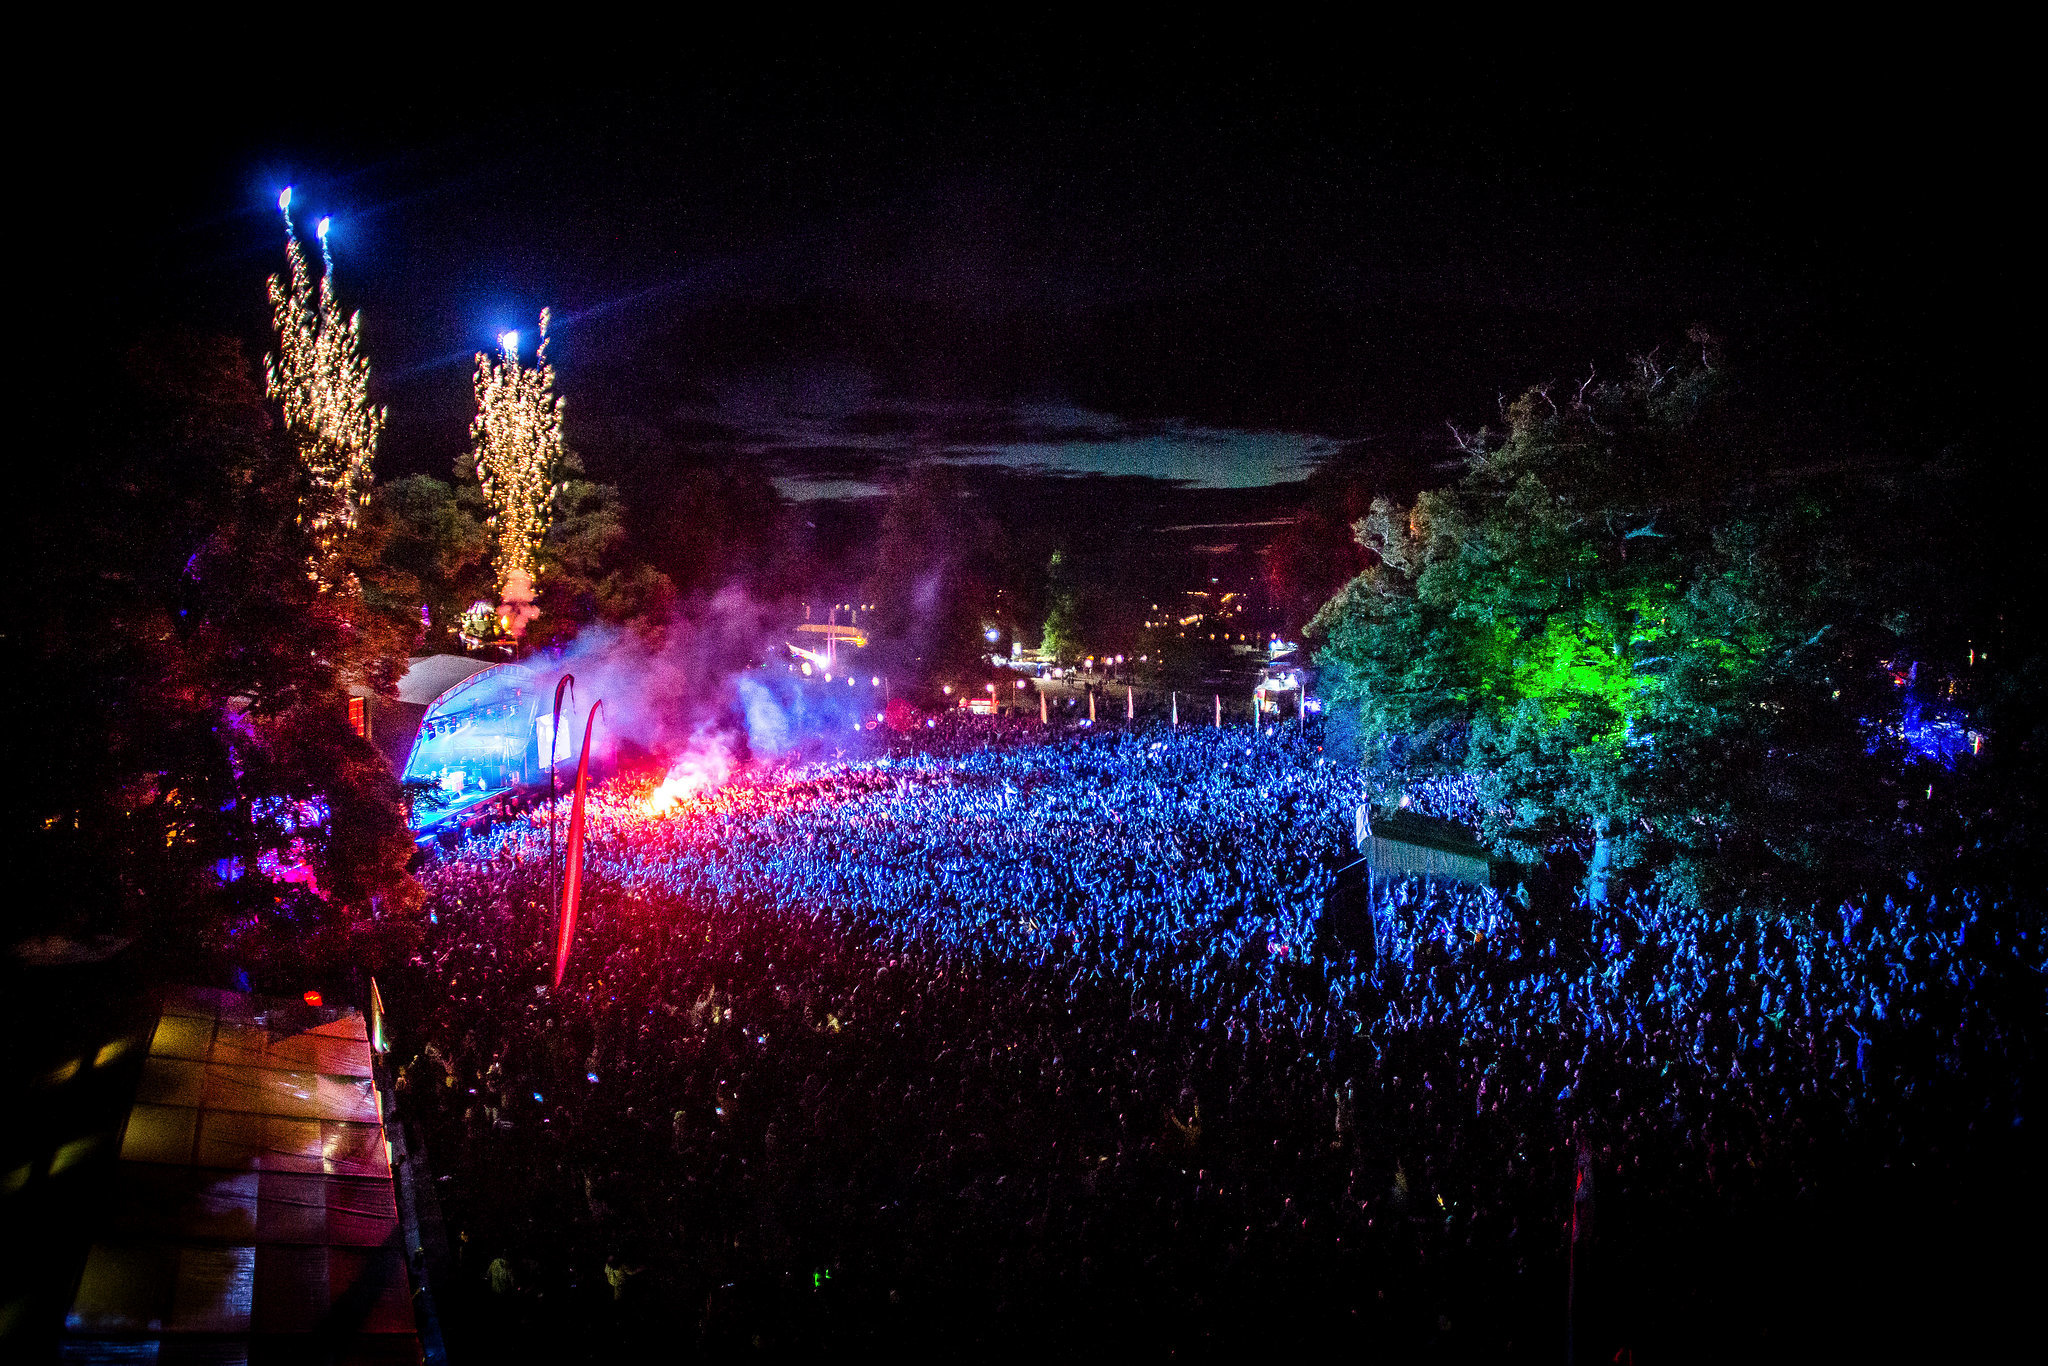 The main stage at Kendal Calling. Credit: Scott Sal